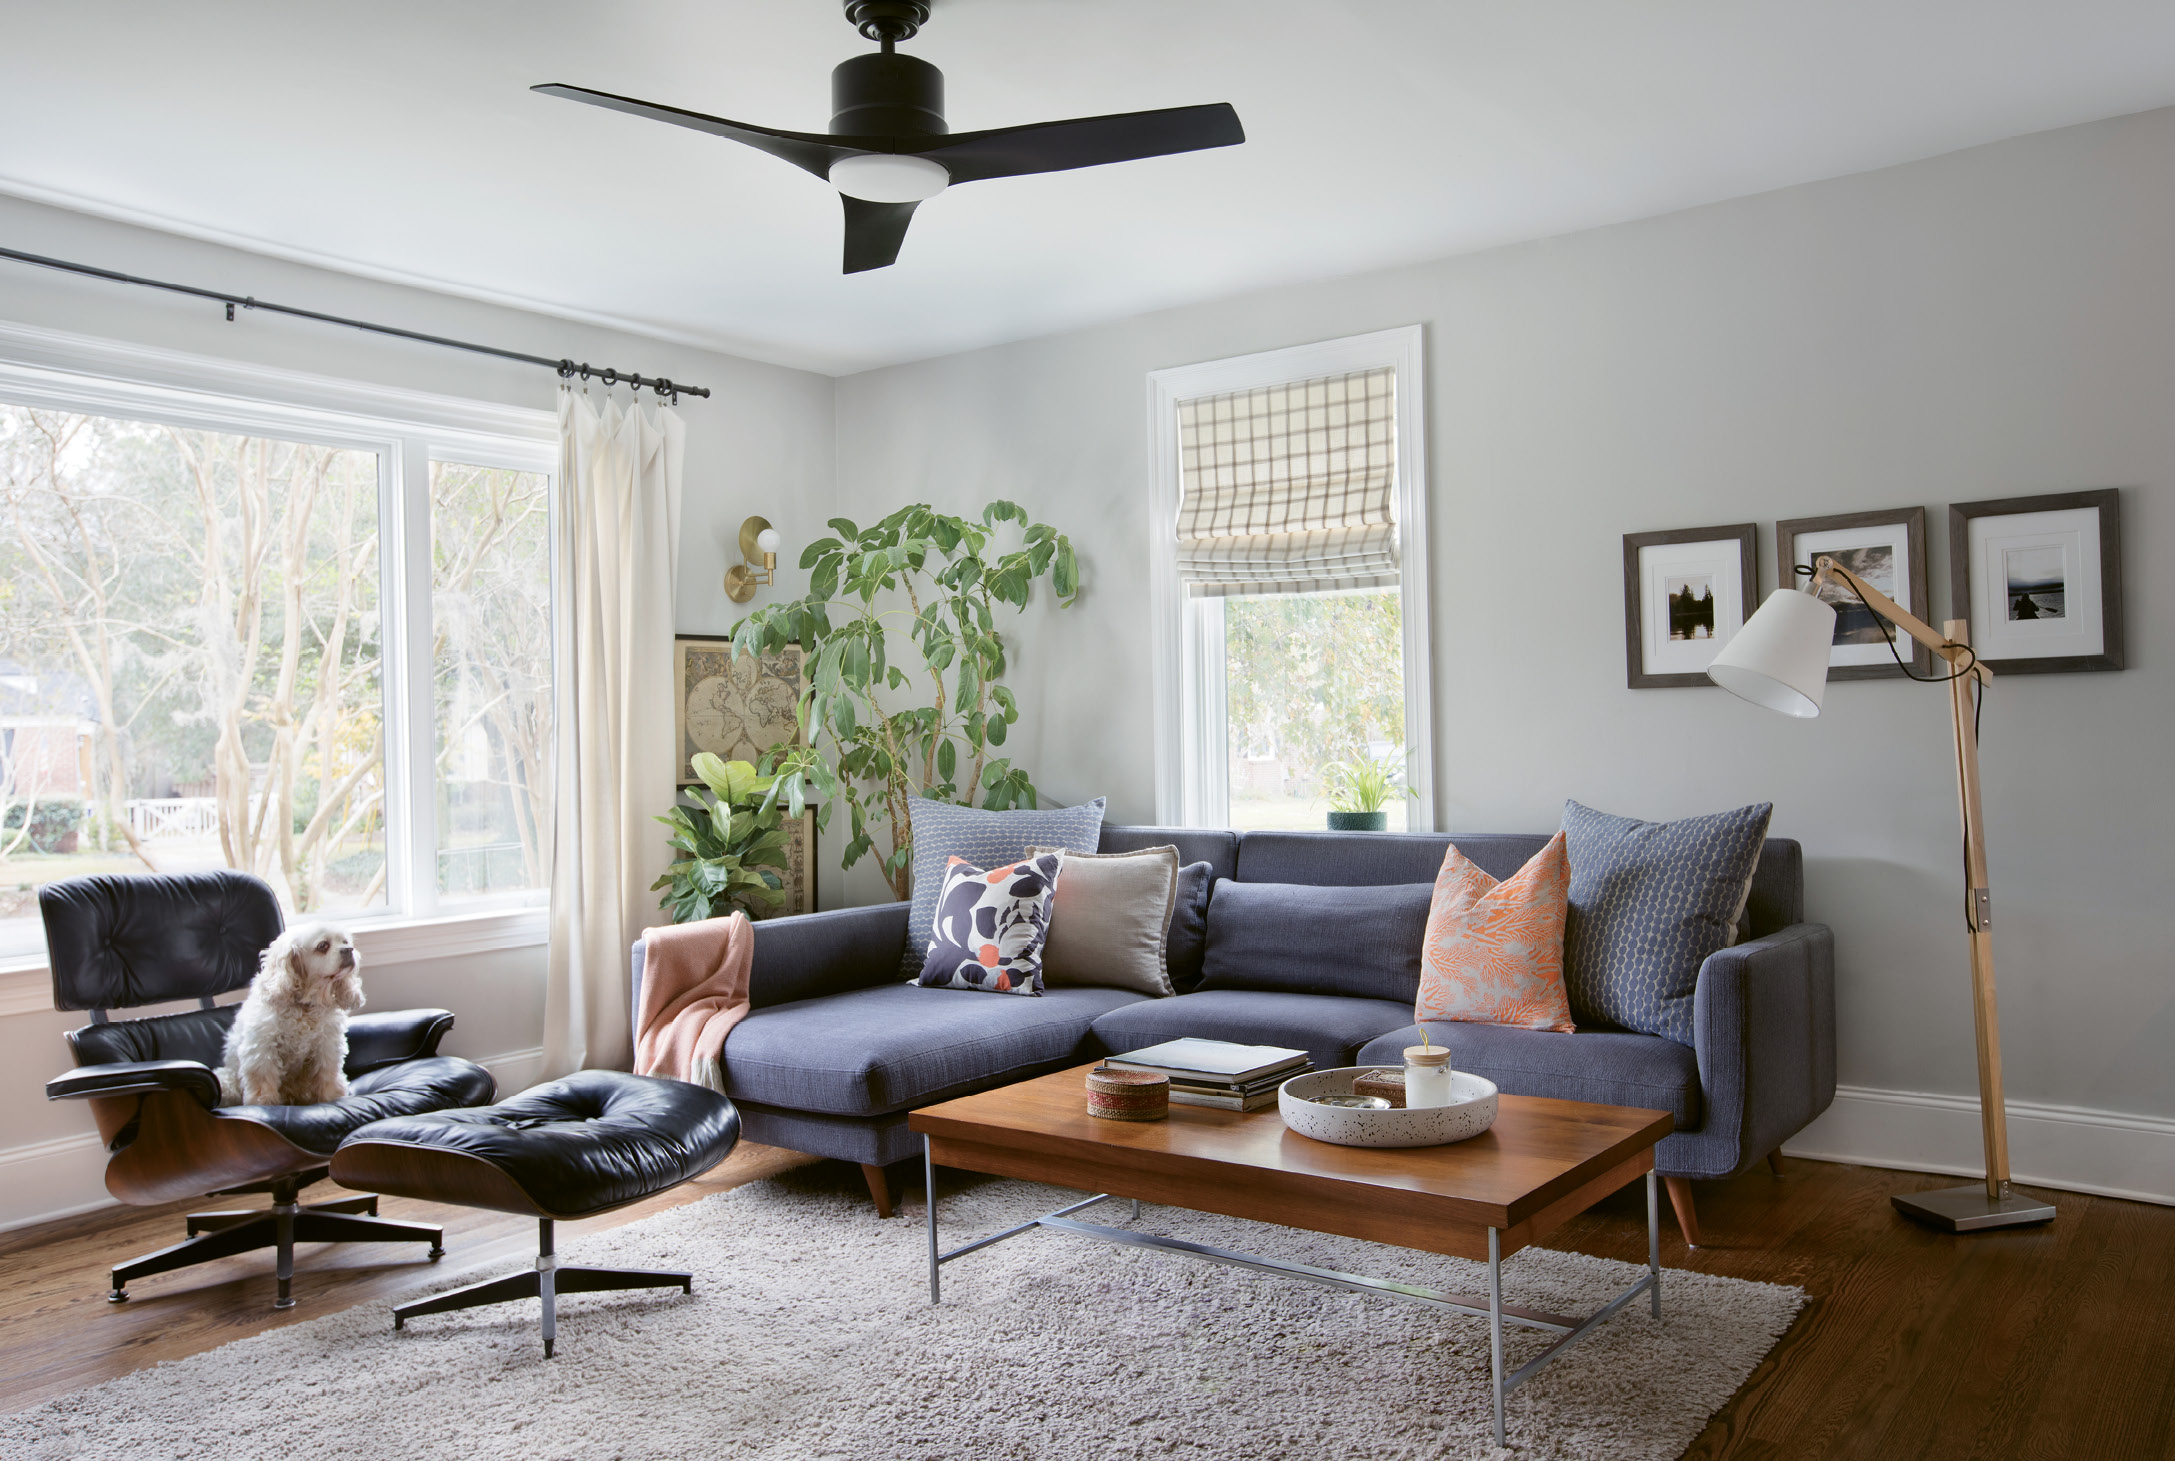 FAMILY HEIRLOOMS: In the living room, a mid-century vibe reigns thanks to a Herman Miller coffee table and Eames chair, both hand-me-downs from Jacques's father. The umbrella plant behind the couch is also a family keepsake: after nurturing it for more than 40 years, Carrie's father passed it down to her for safekeeping.